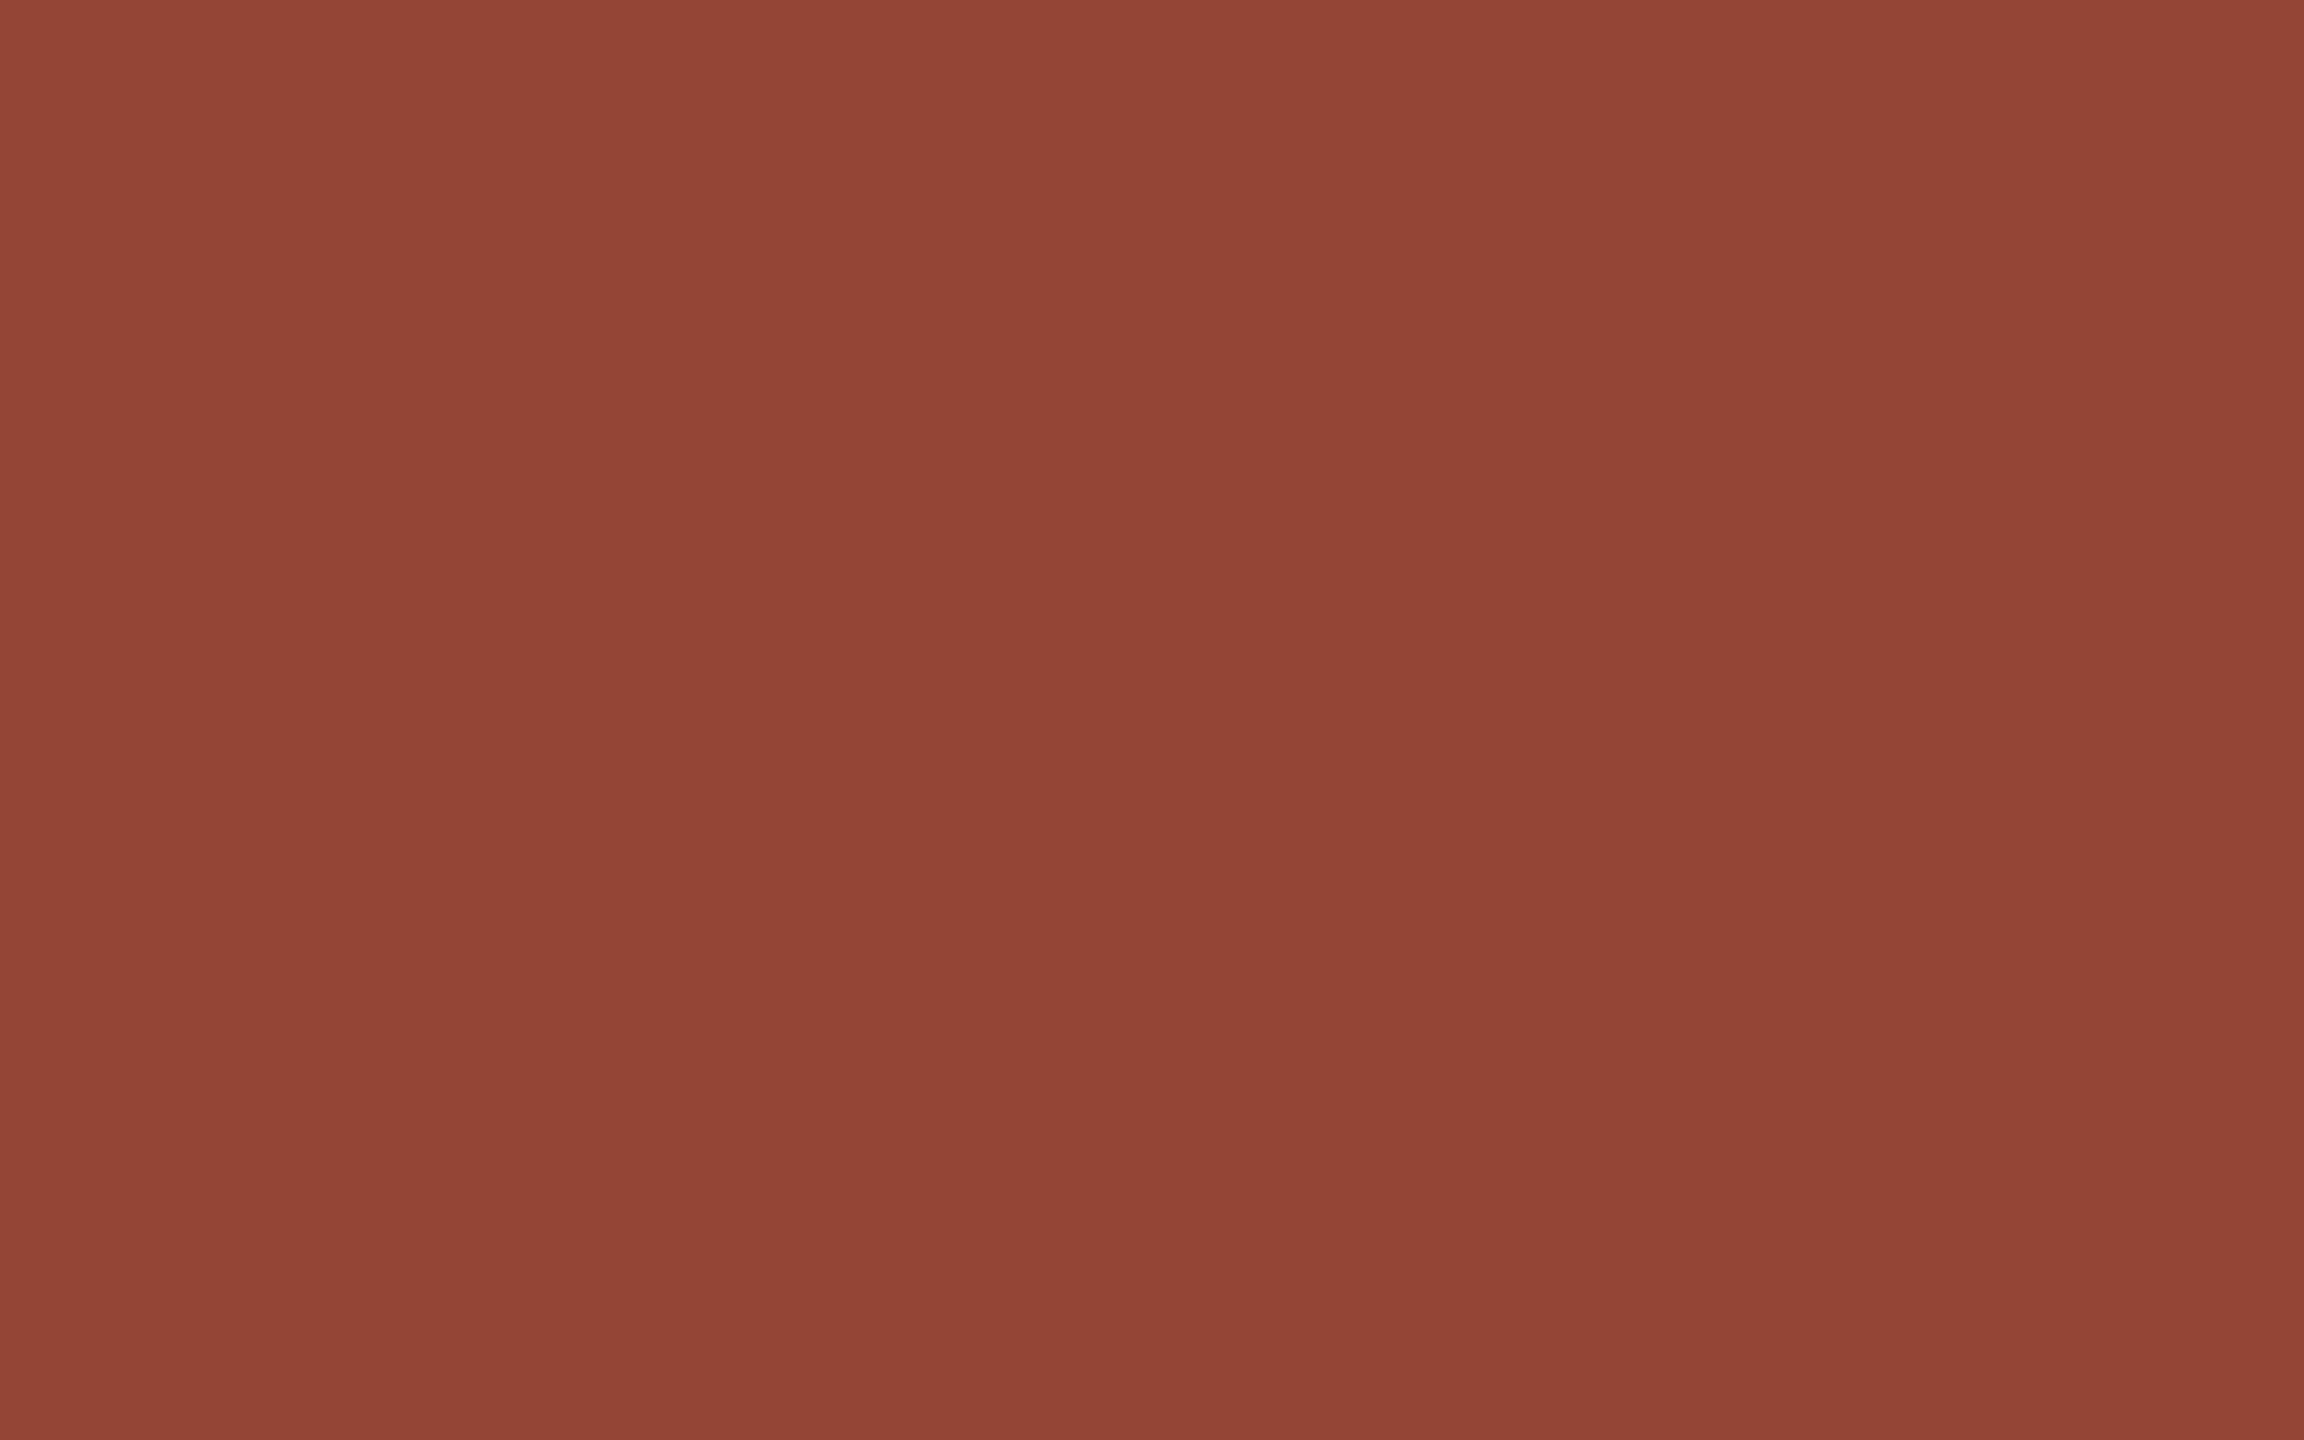 2304x1440 Chestnut Solid Color Background